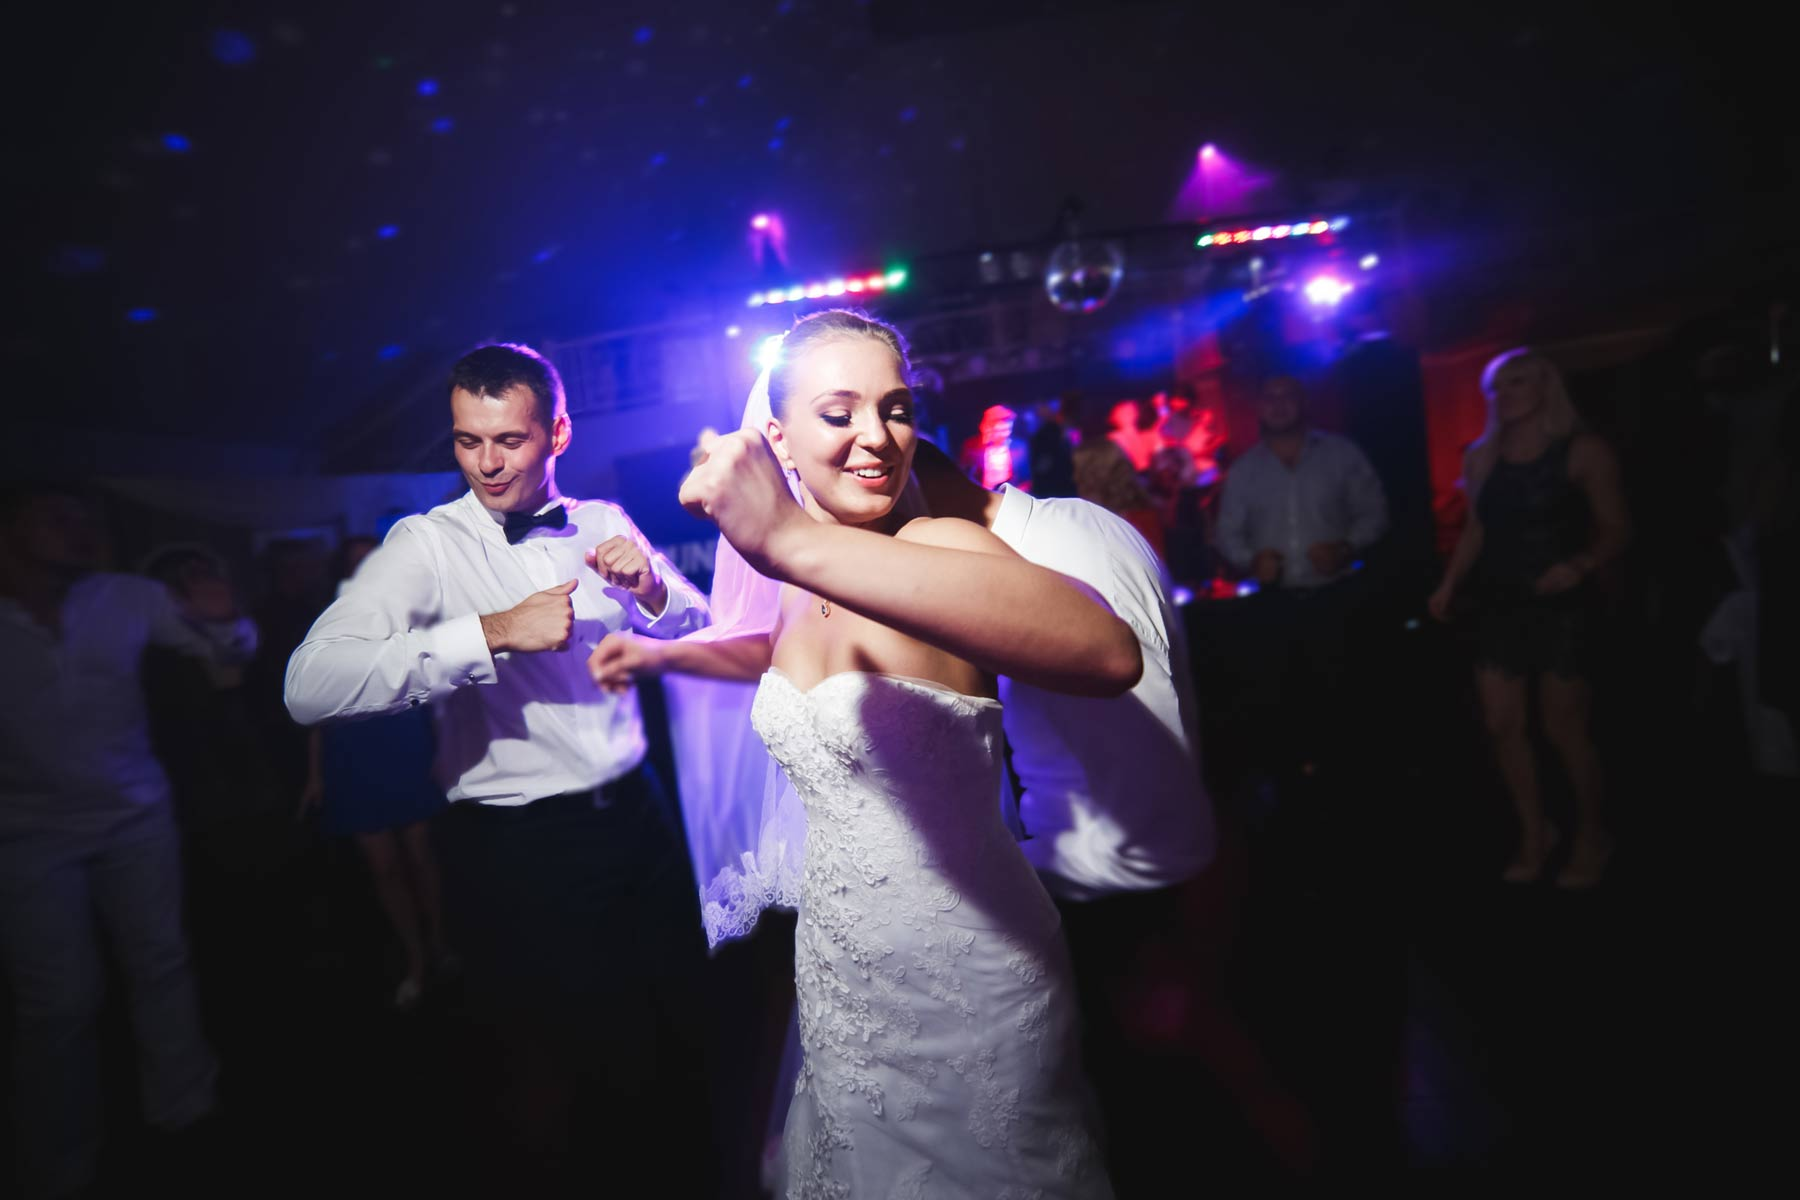 Bride and Groom grooving on the dance floor with guests